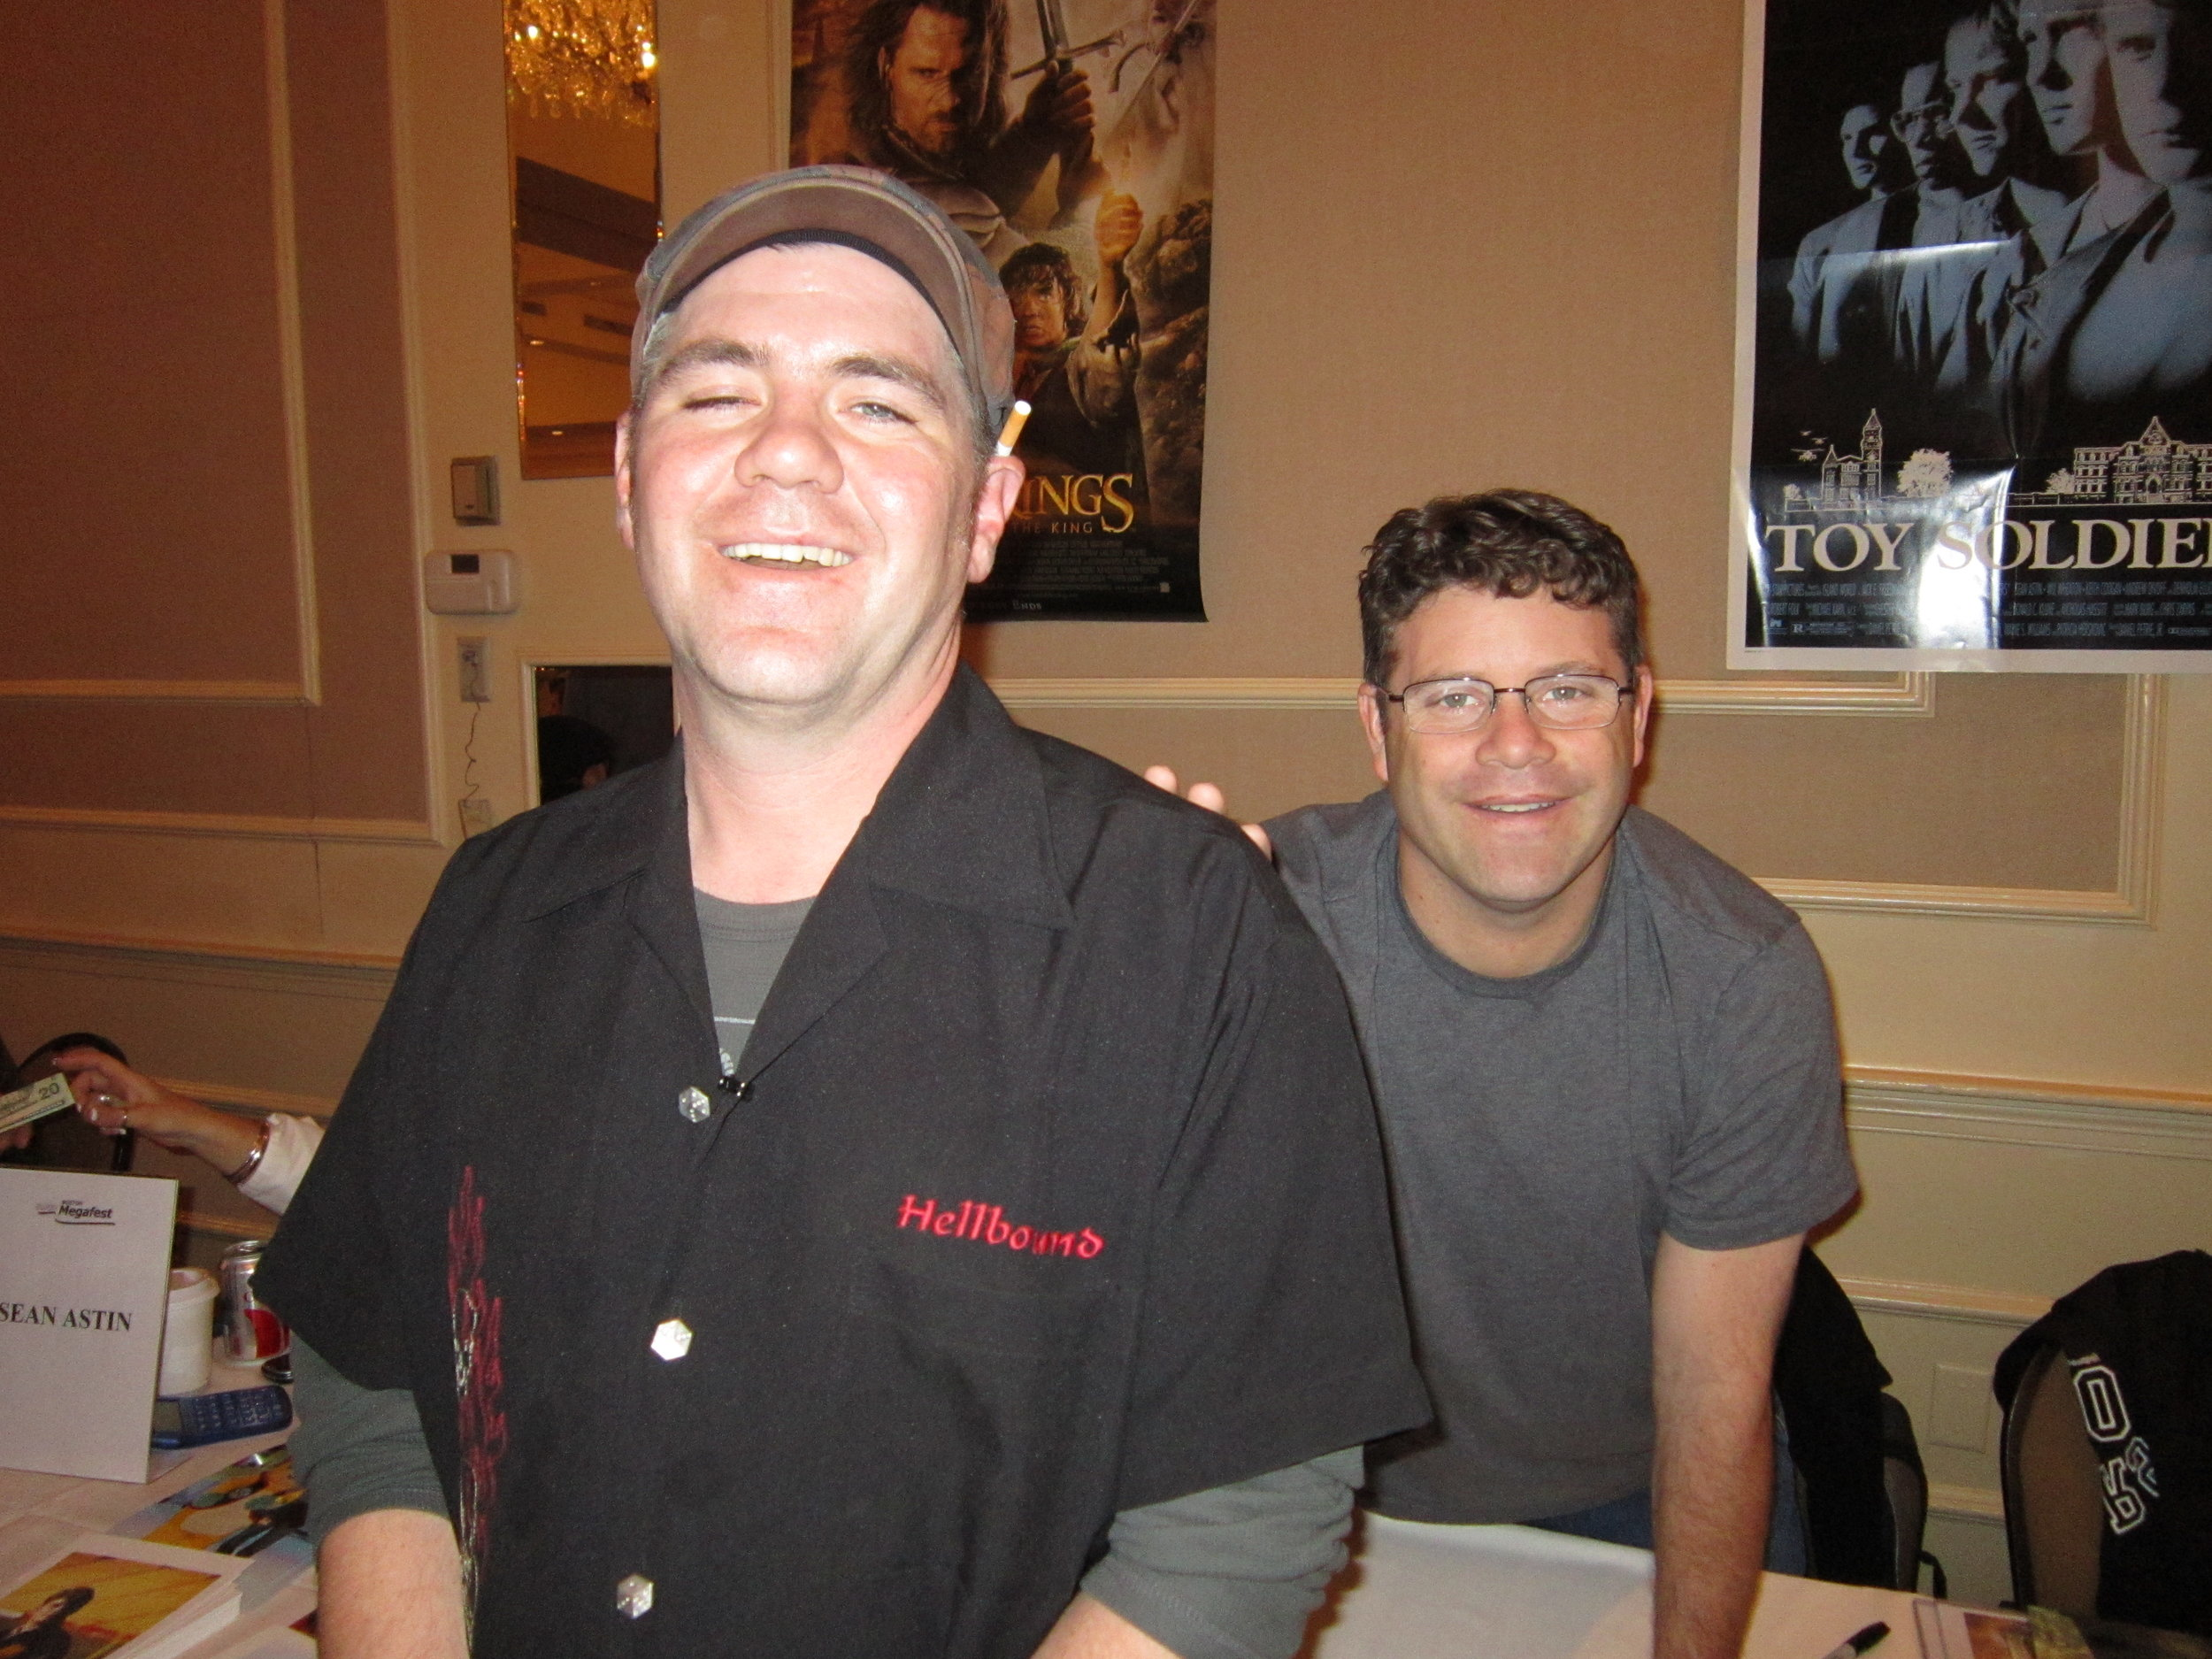 SBJ with Sean Astin from The Goonies